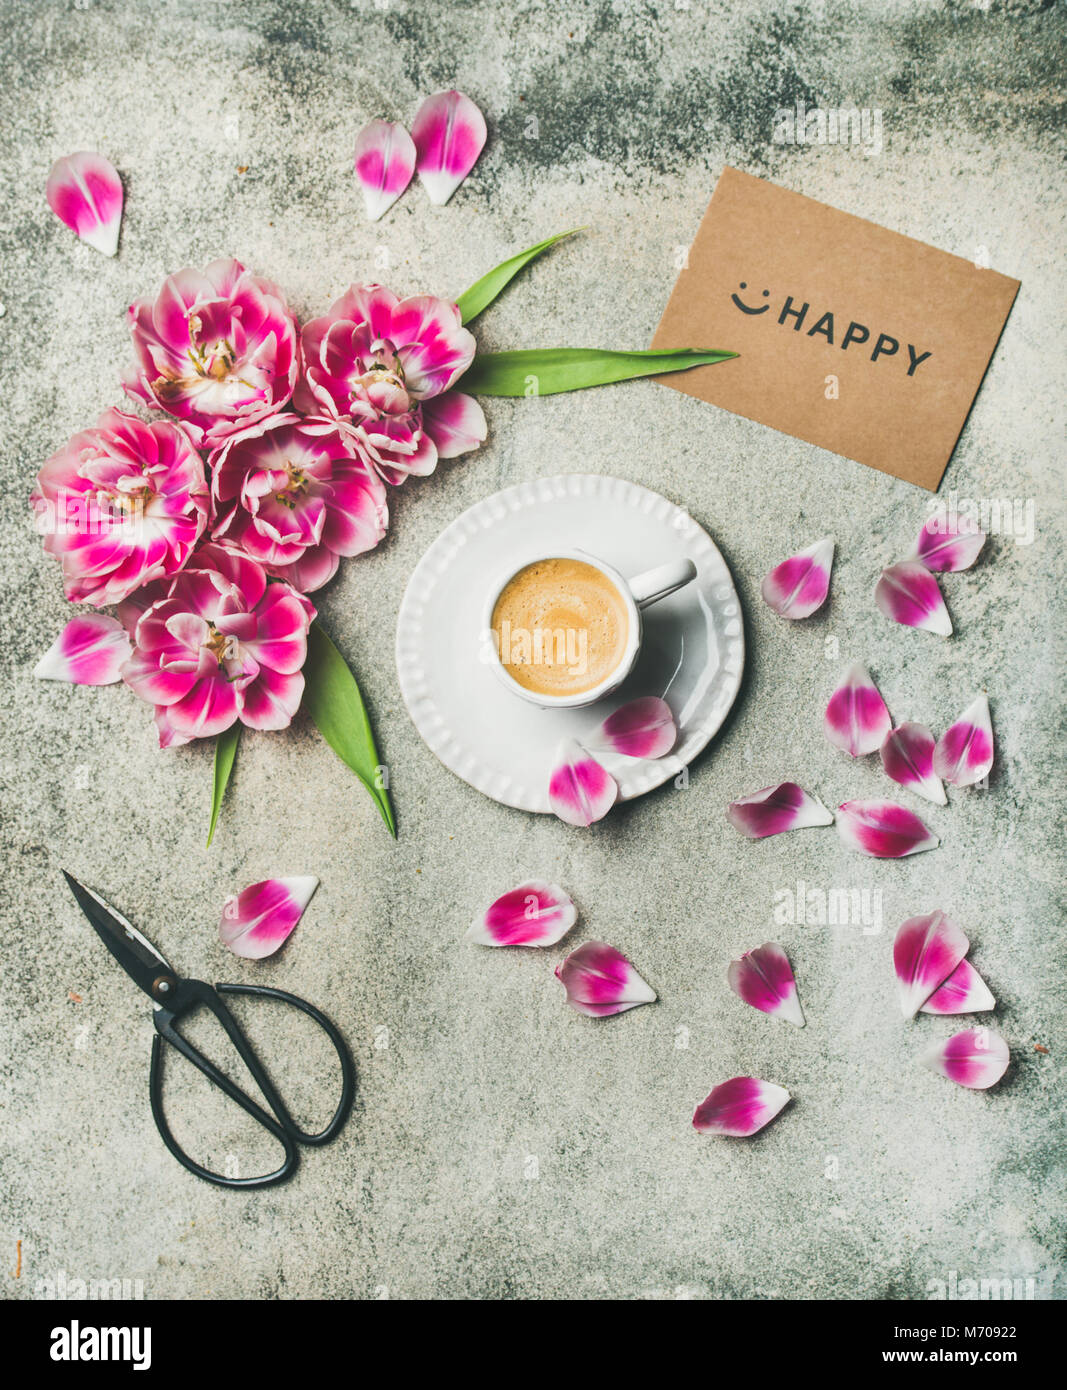 Cup of coffee surrounded with pink tulip flowers - Stock Image